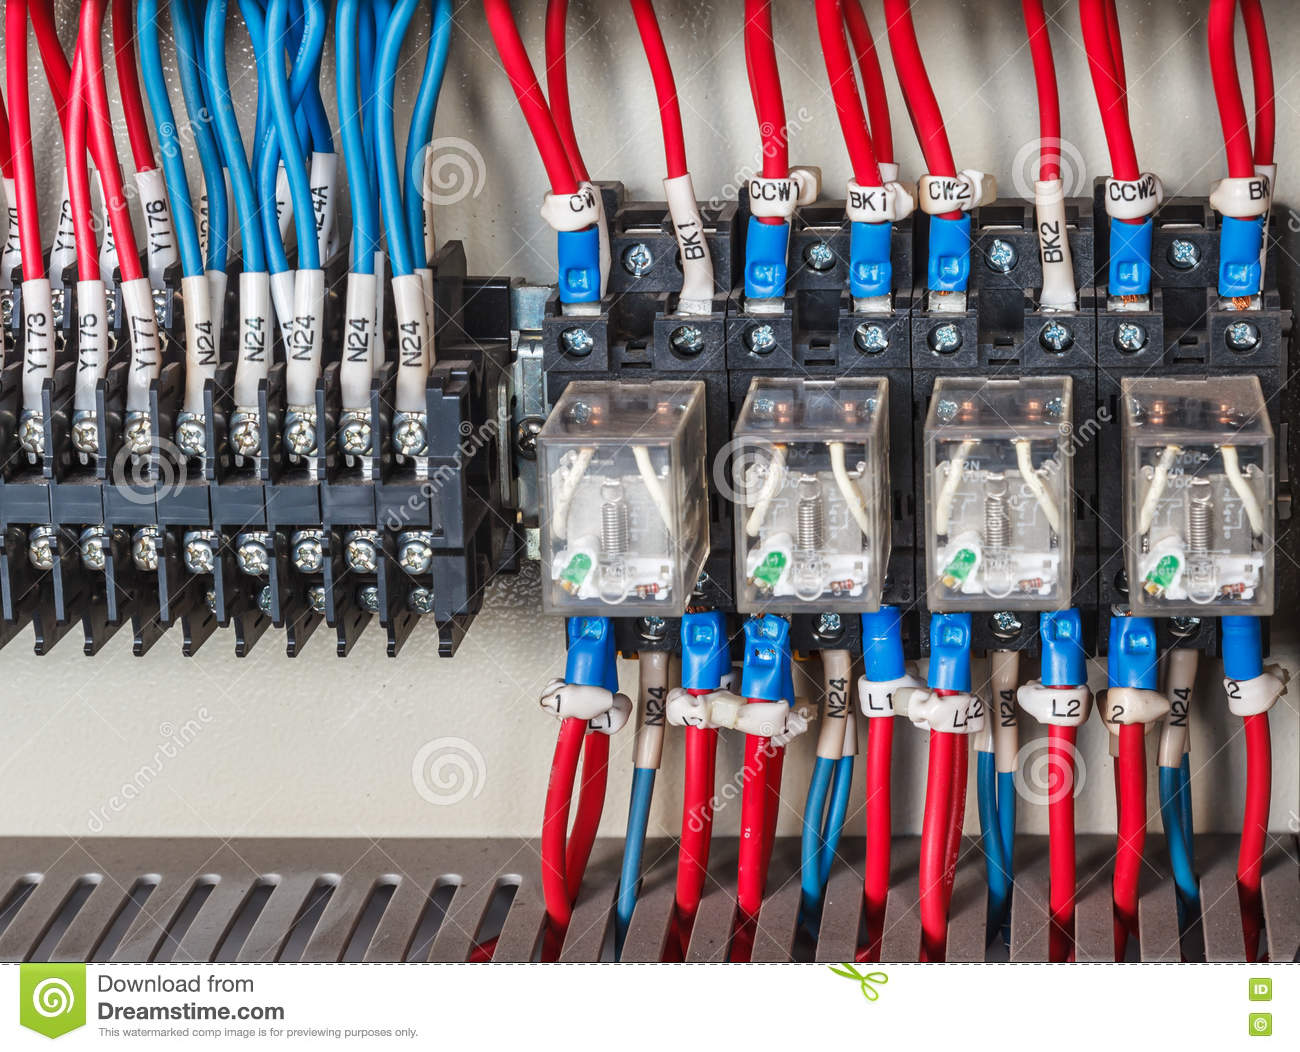 Astounding Wiring Plc Stock Photo Image Of Electric Amps Electrician 71996202 Dandim Mohammedshrine Wiring Diagrams Dandimmohammedshrineorg